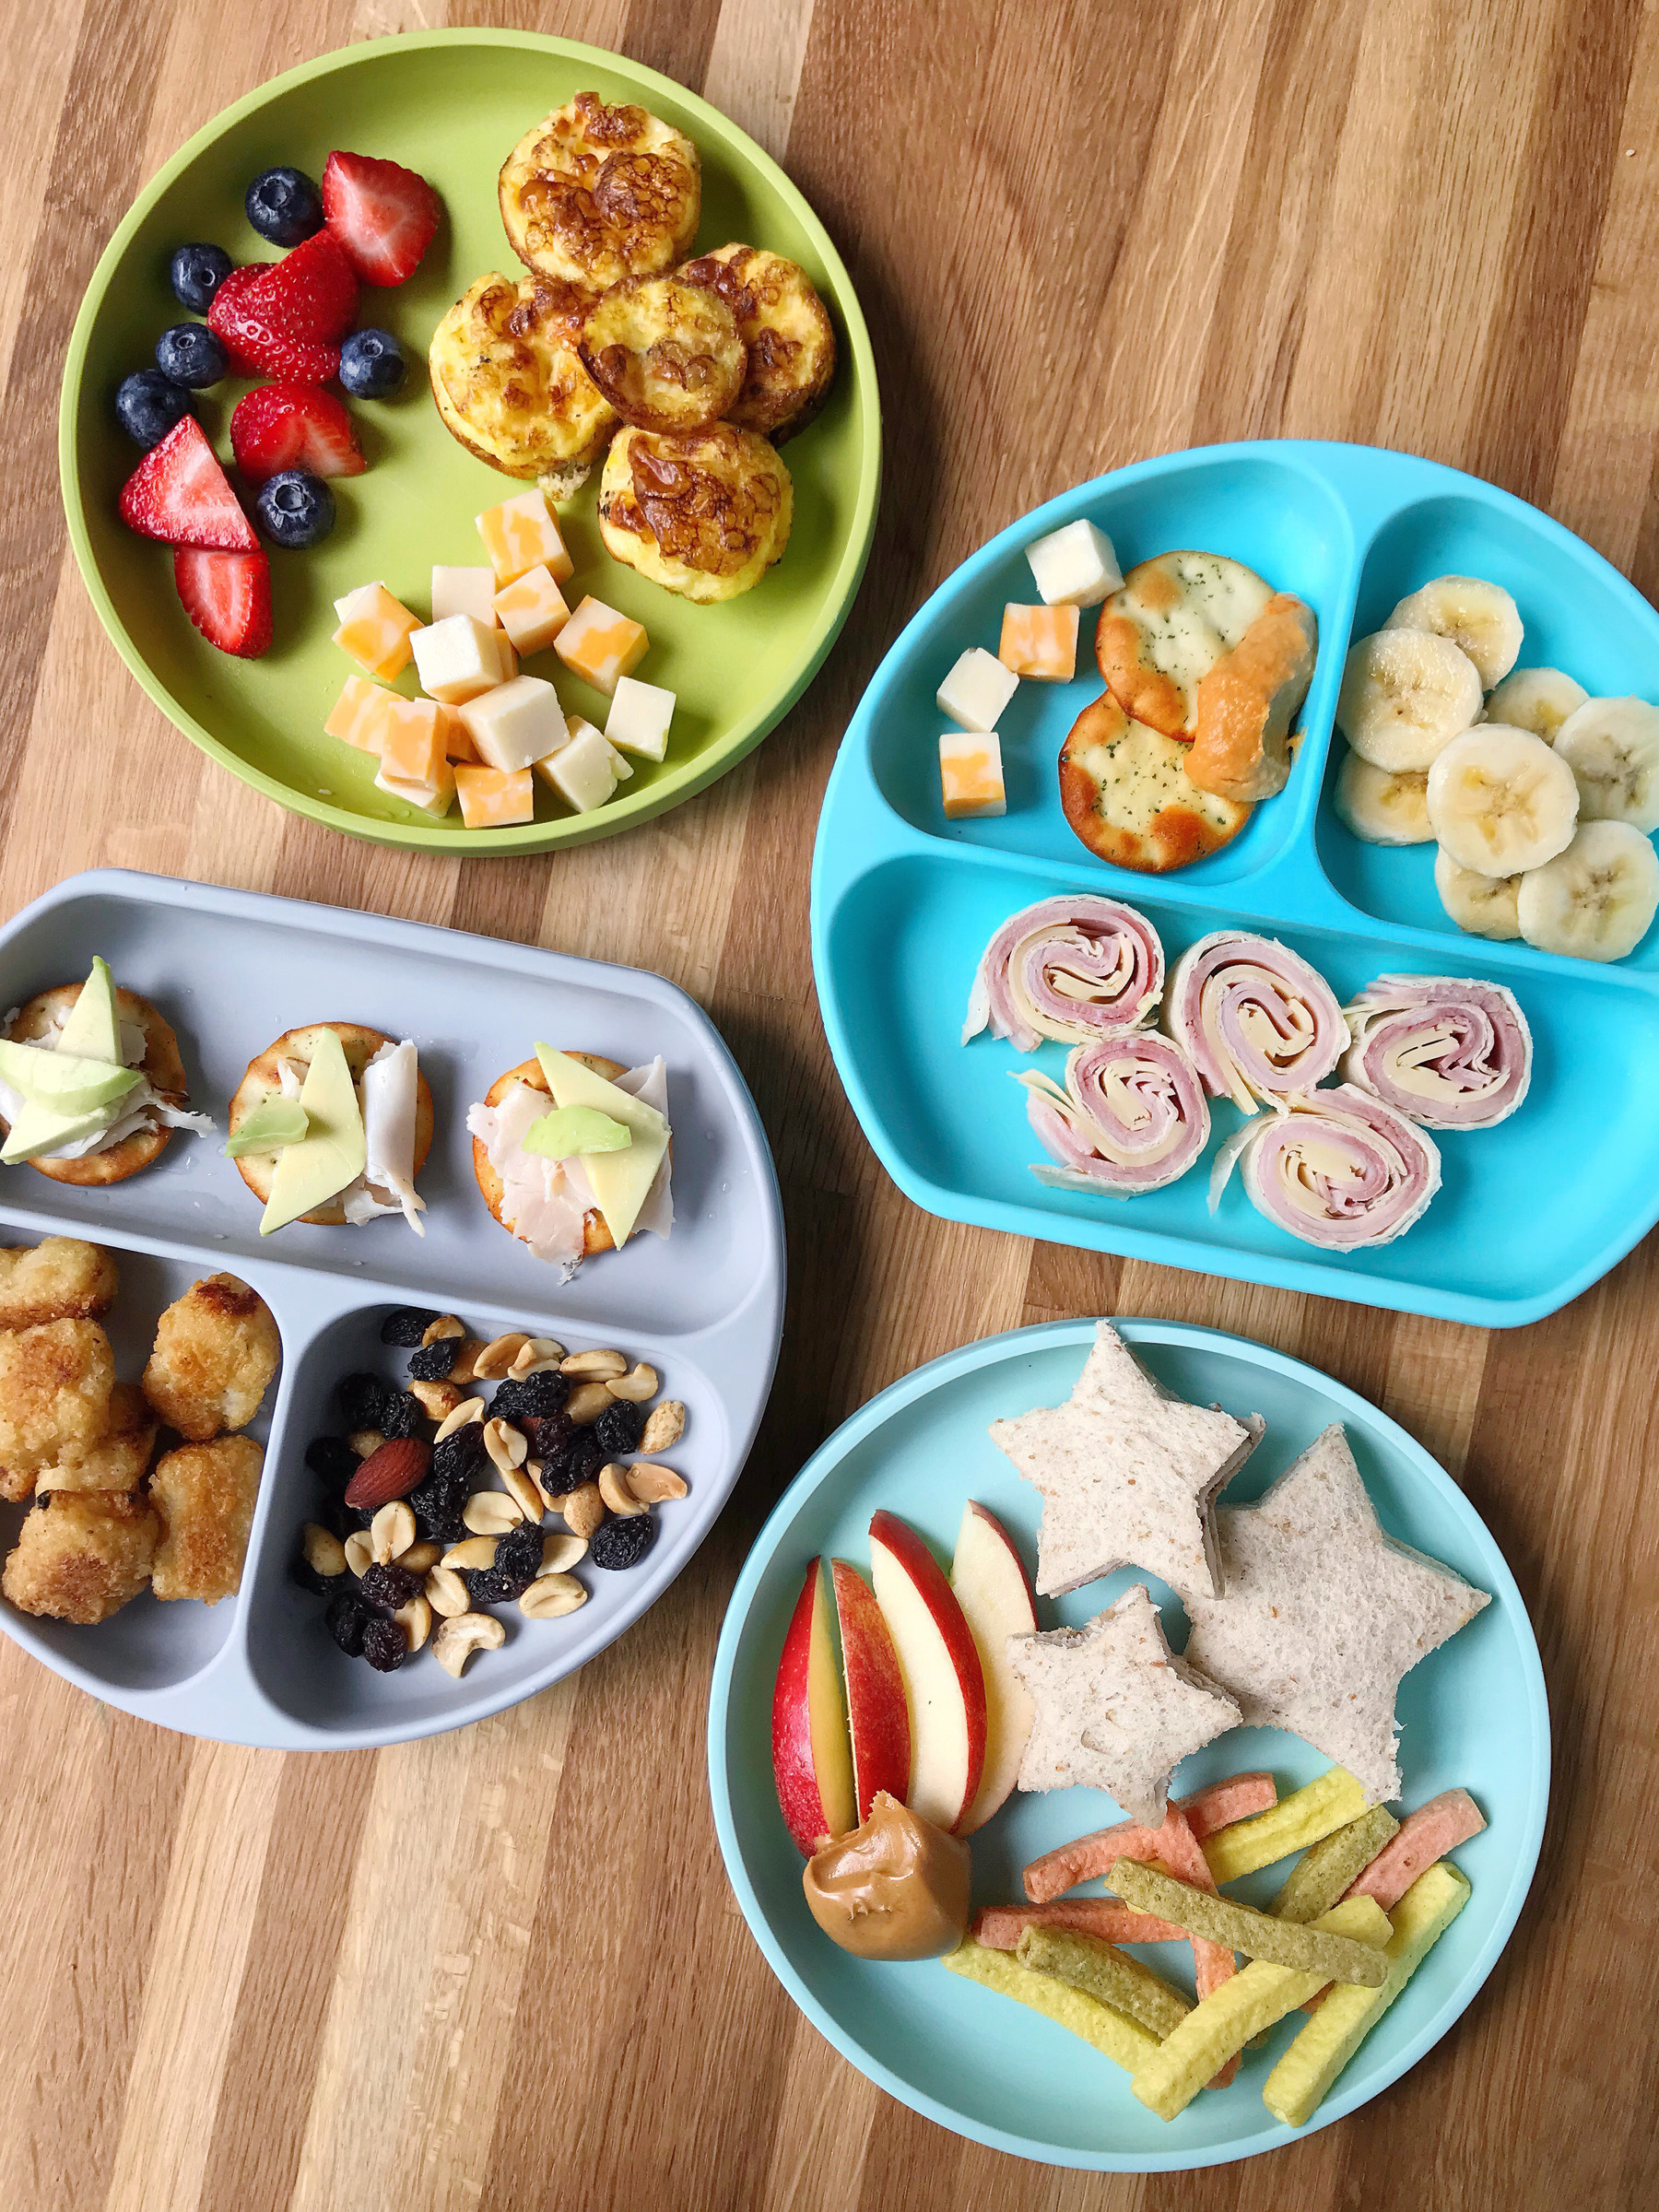 Kid Friendly Snack Plate Lunches